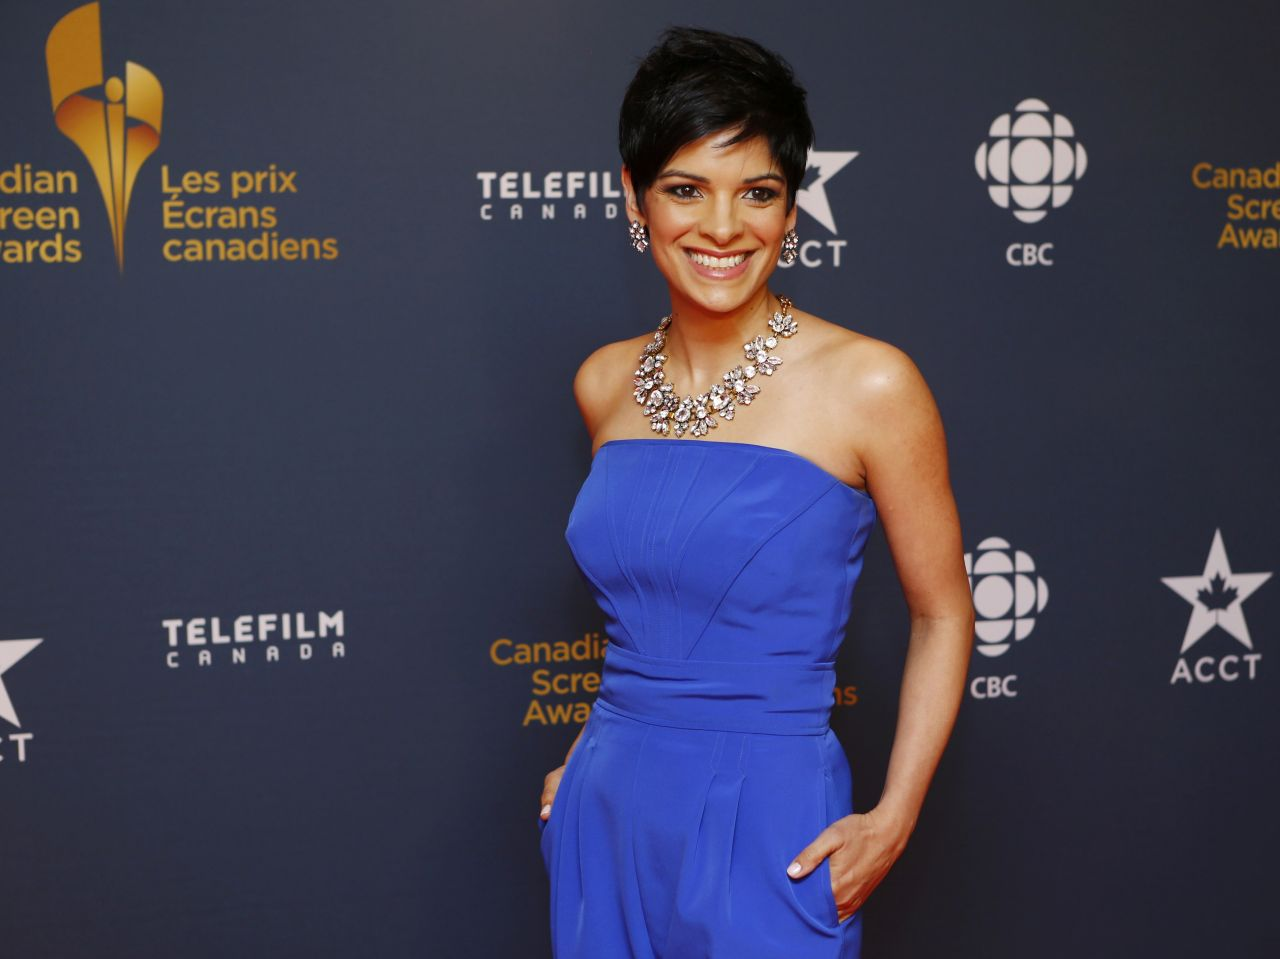 Anne-Marie Mediwake - 2014 Canadian Screen Awards